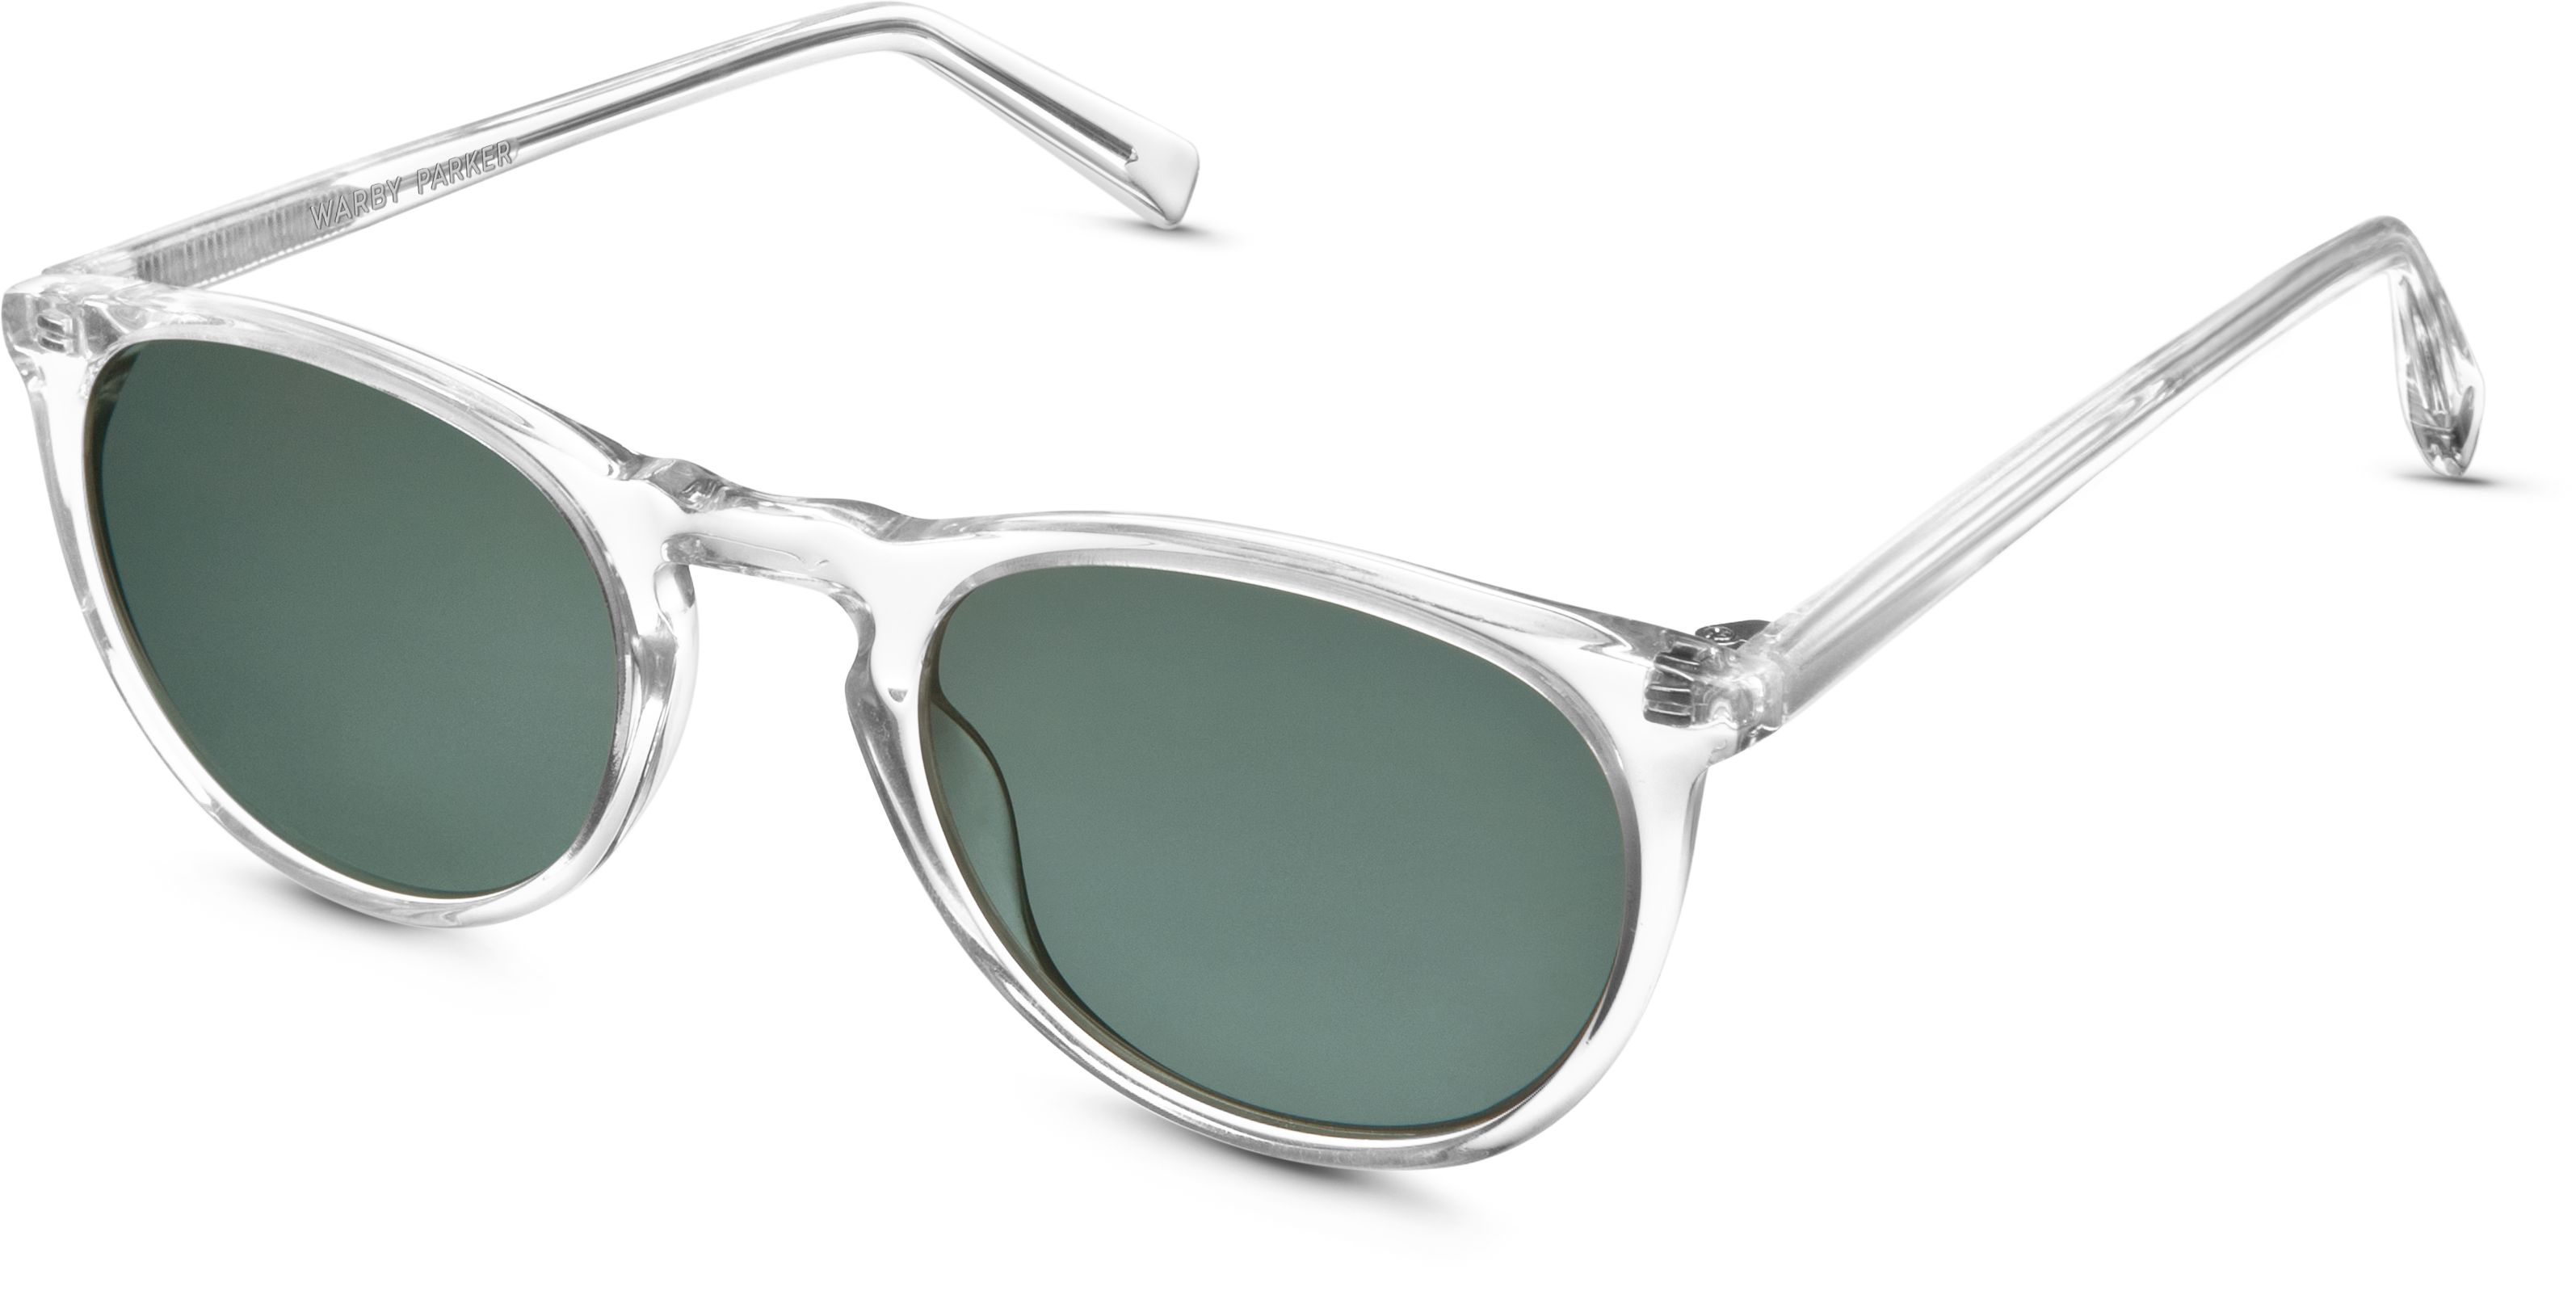 523a10b400 Haskell Sunglasses in Crystal with Green Grey lenses for Men